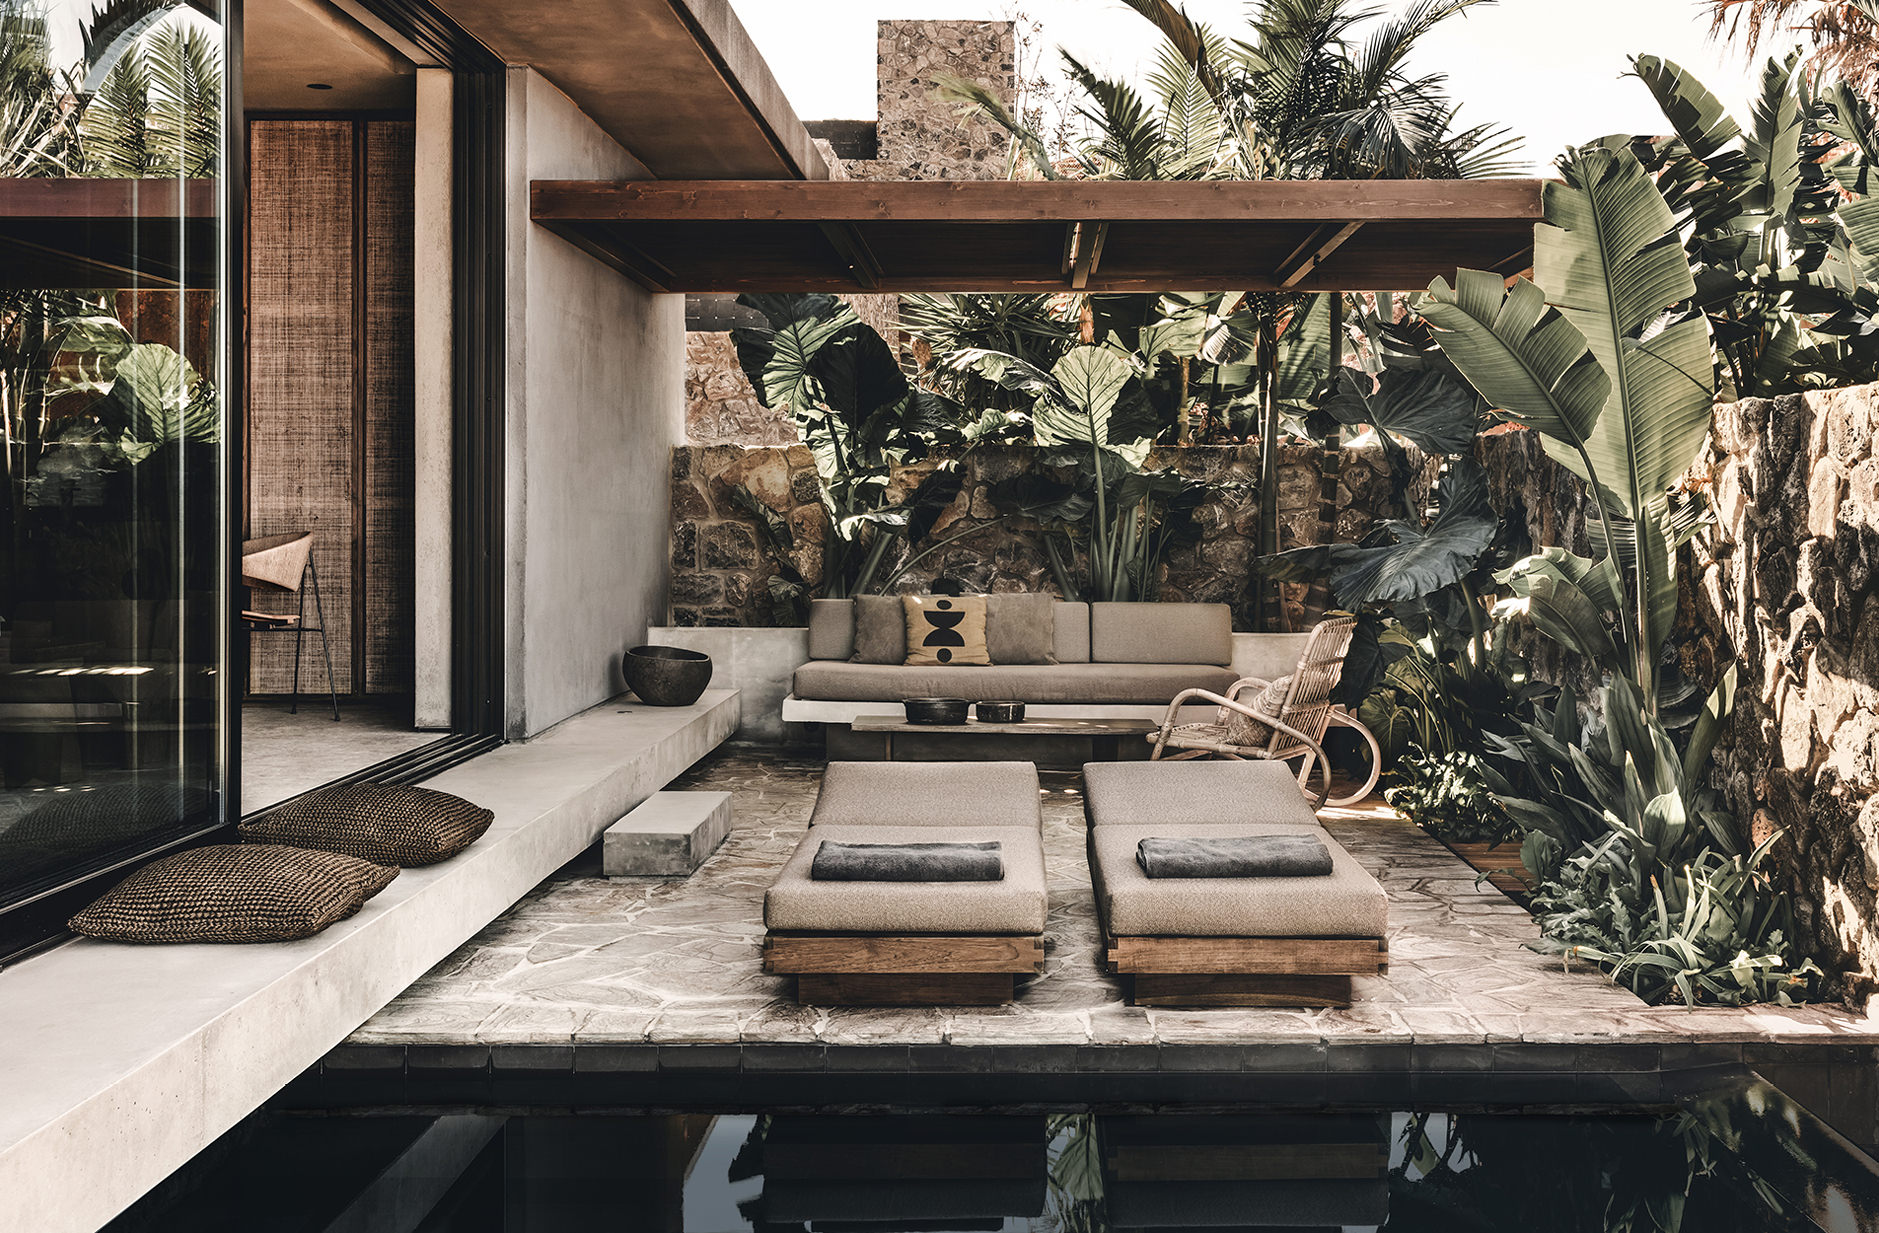 3_Casa_Cook_Chania_Lambs_and_Lions_Berlin